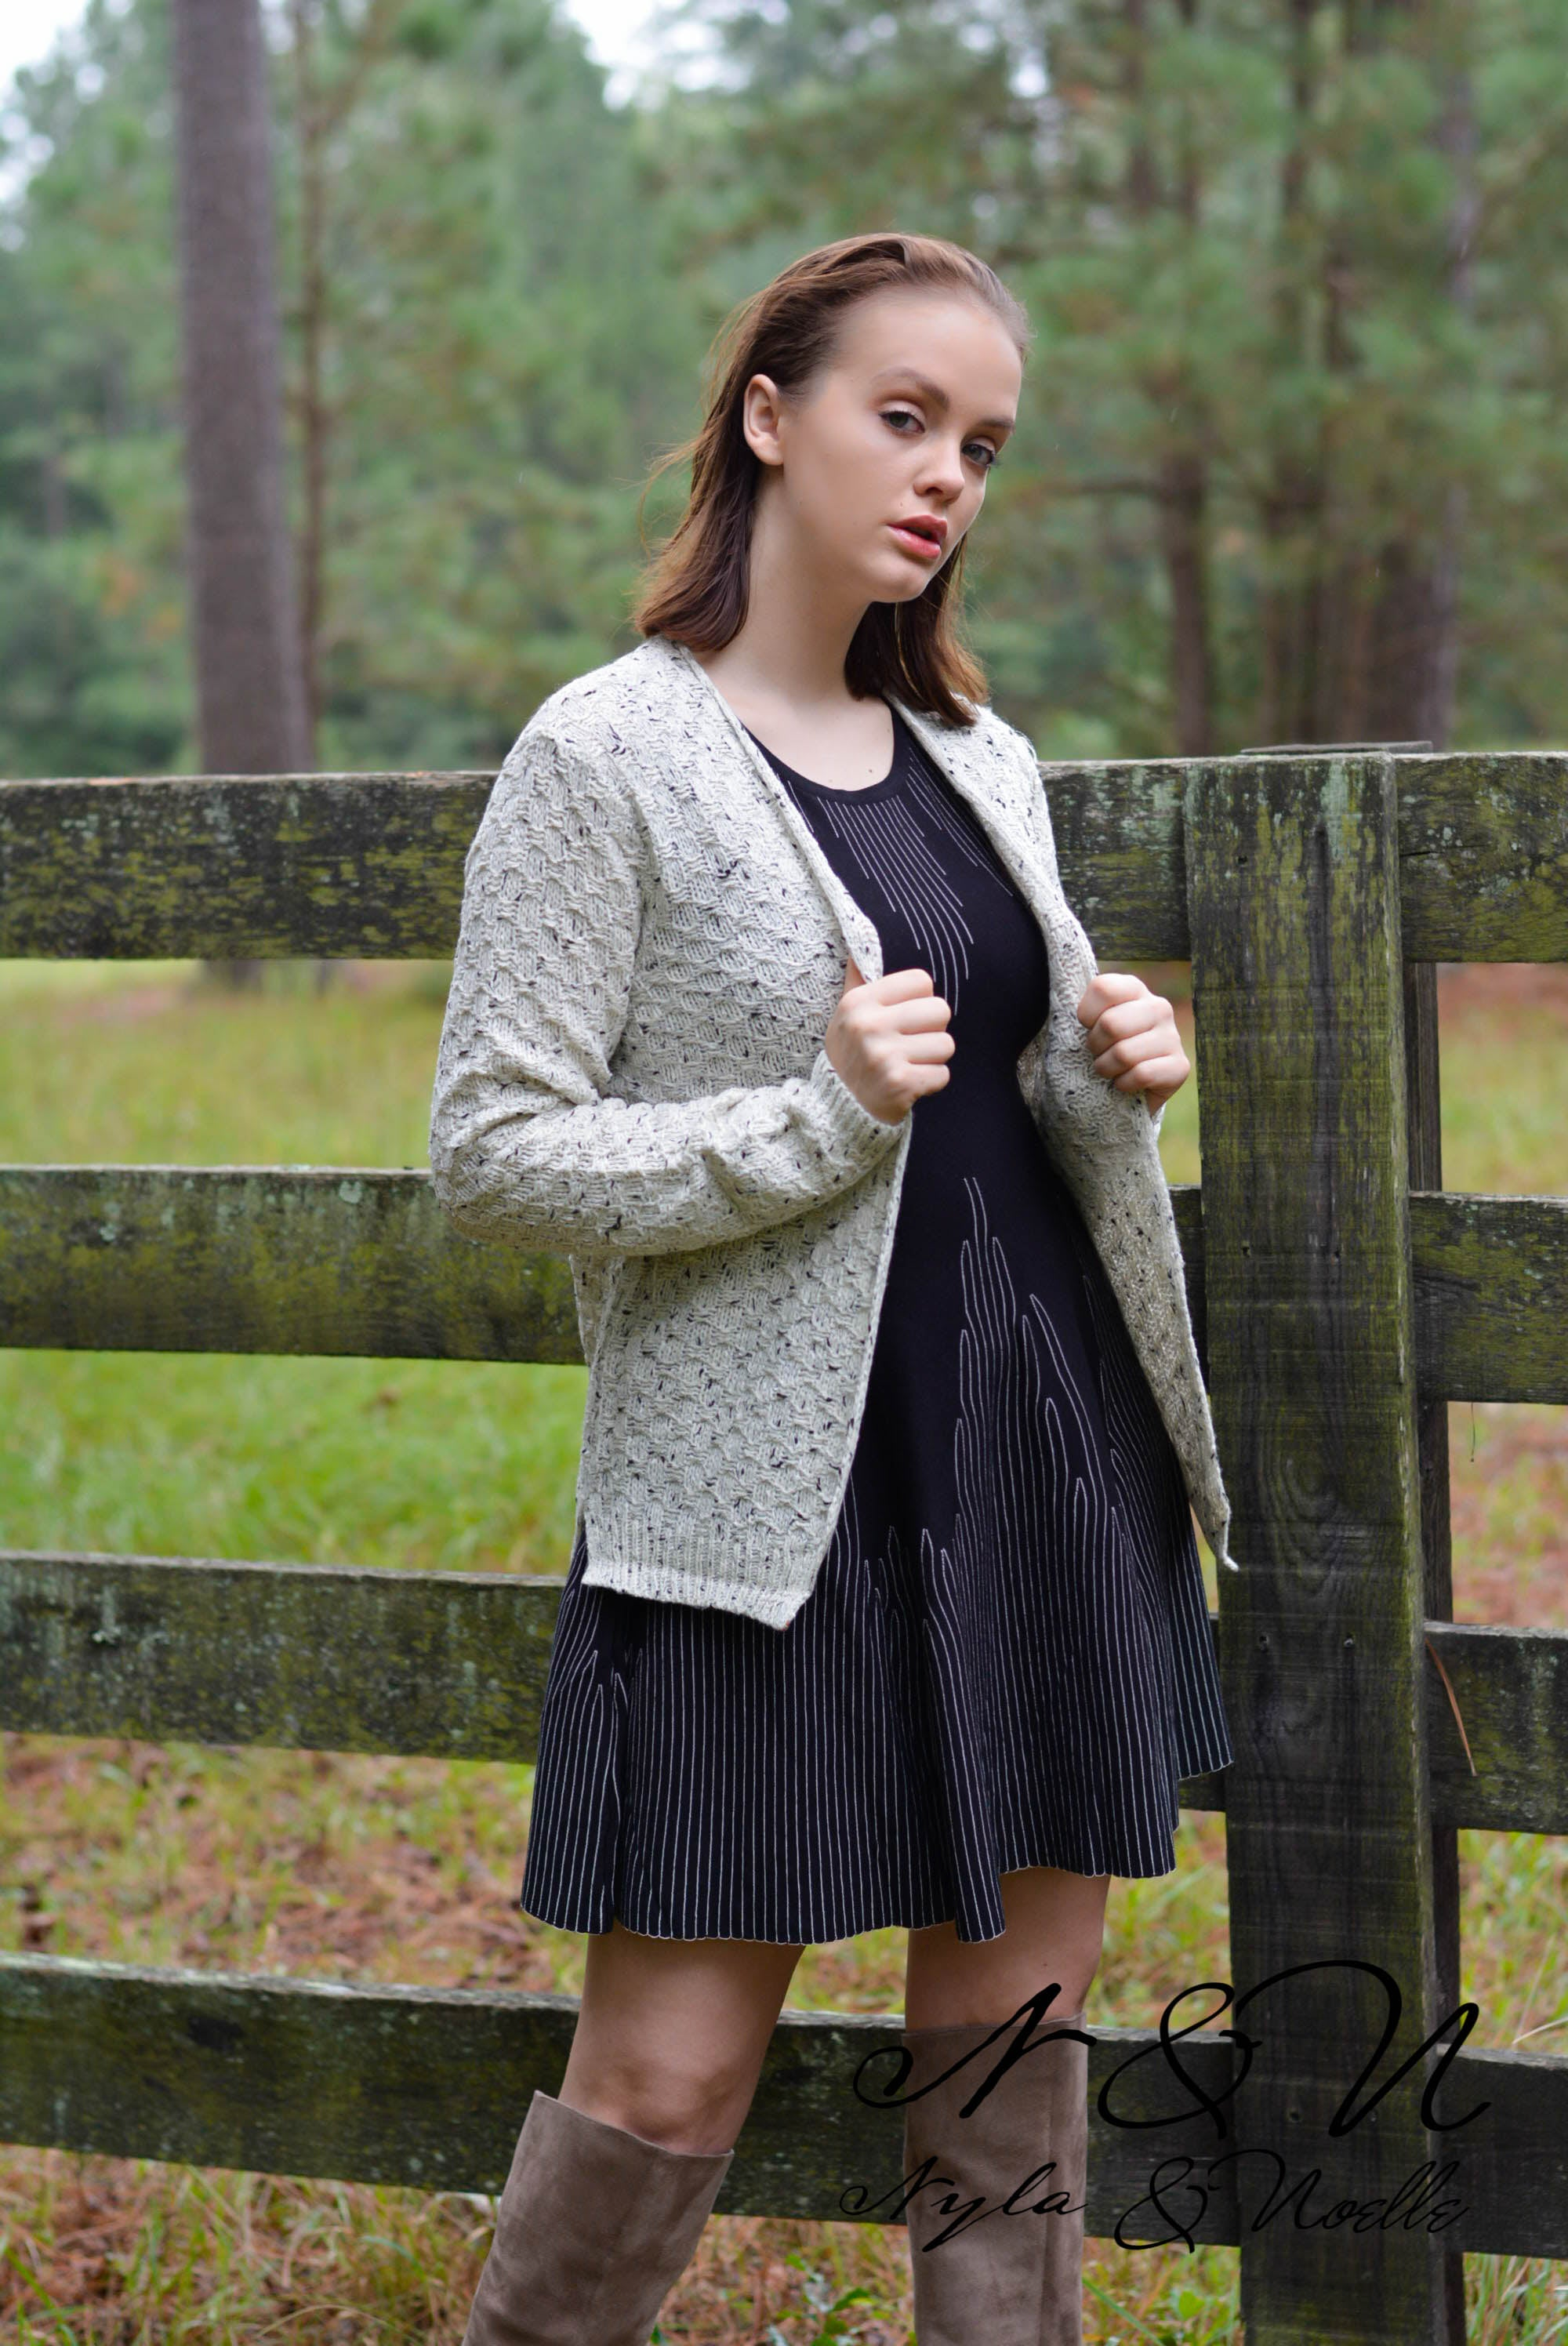 ELOQUENT - Textured Sweater Knit Cardigan